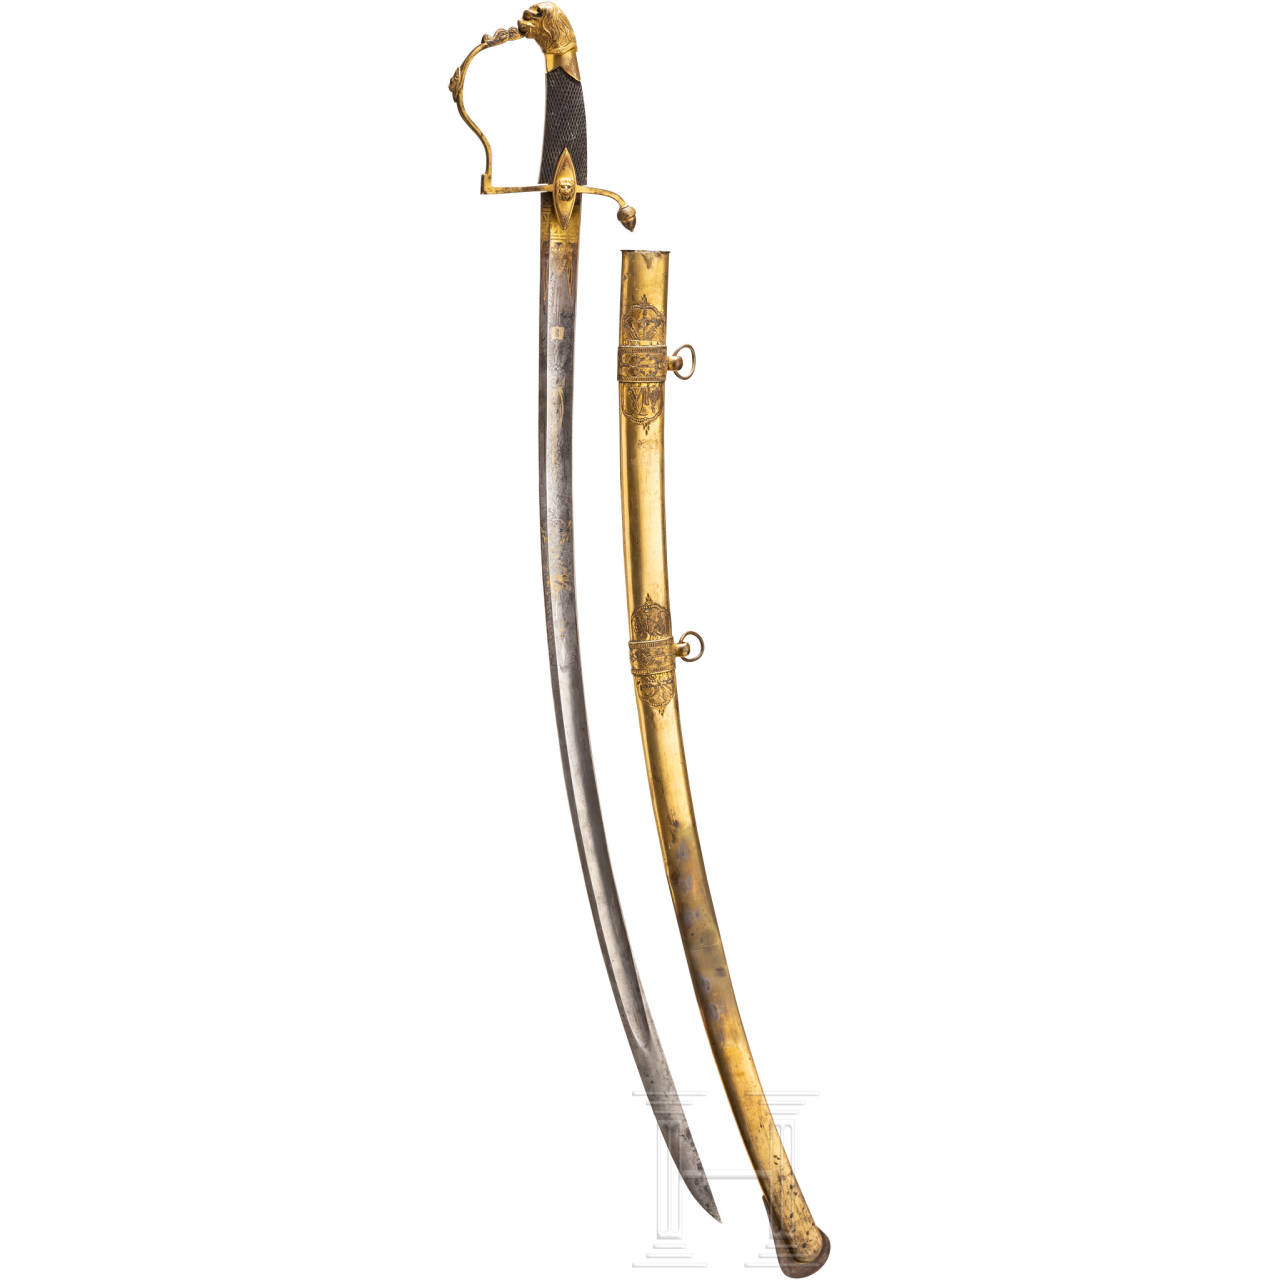 A German officer's sabre, circa 1830